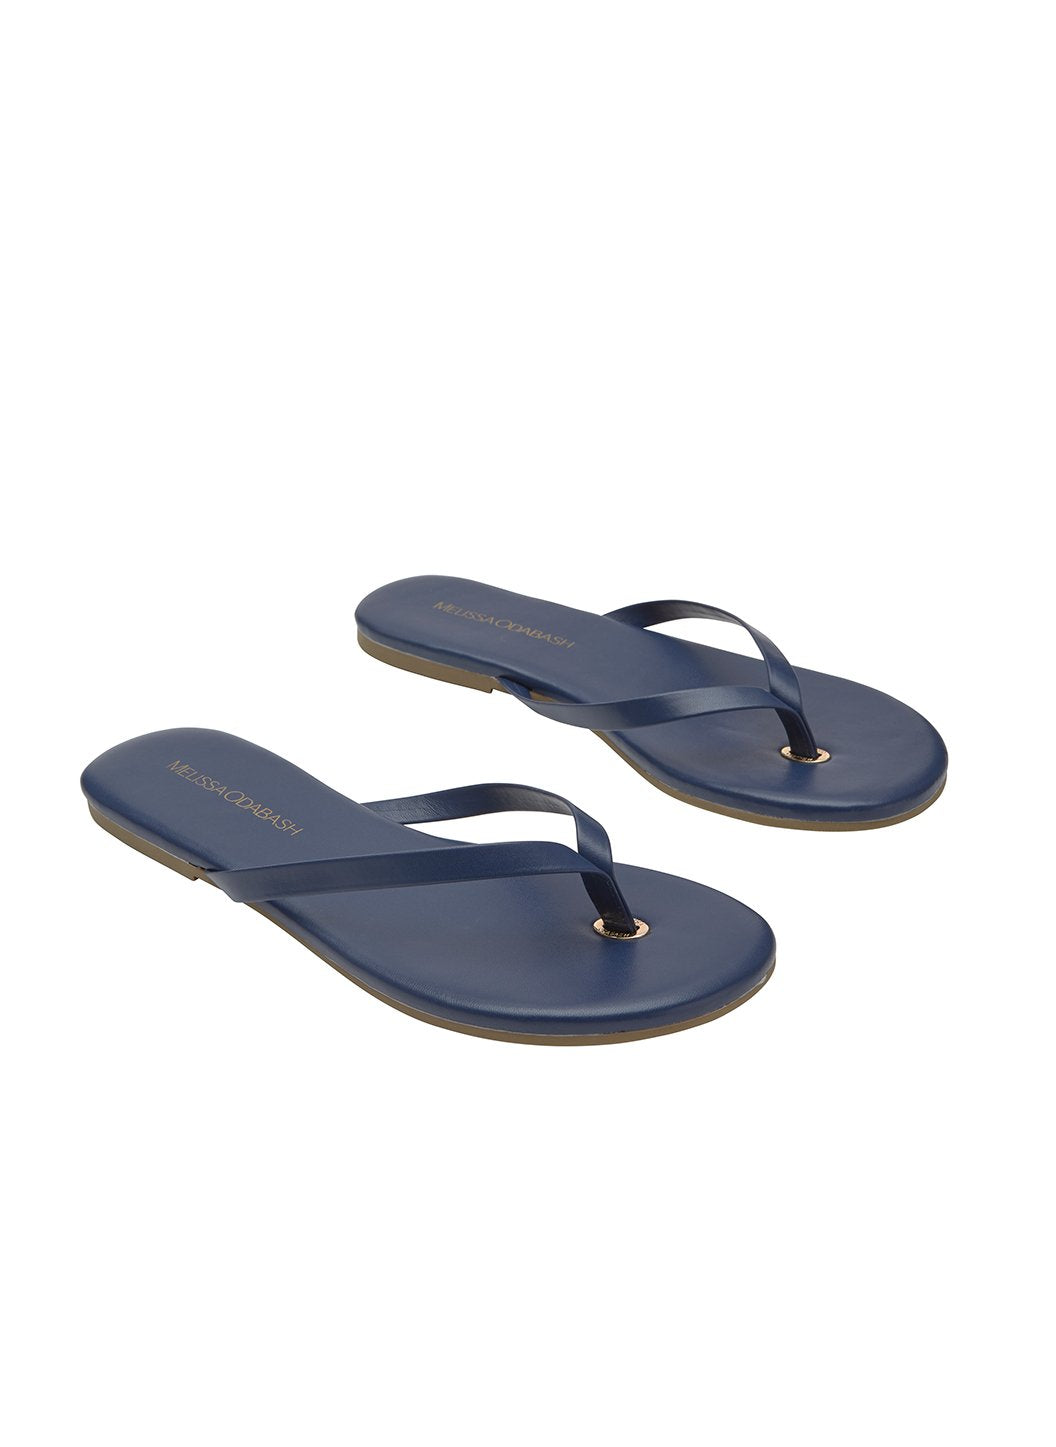 flip flop leather navy 2019 2